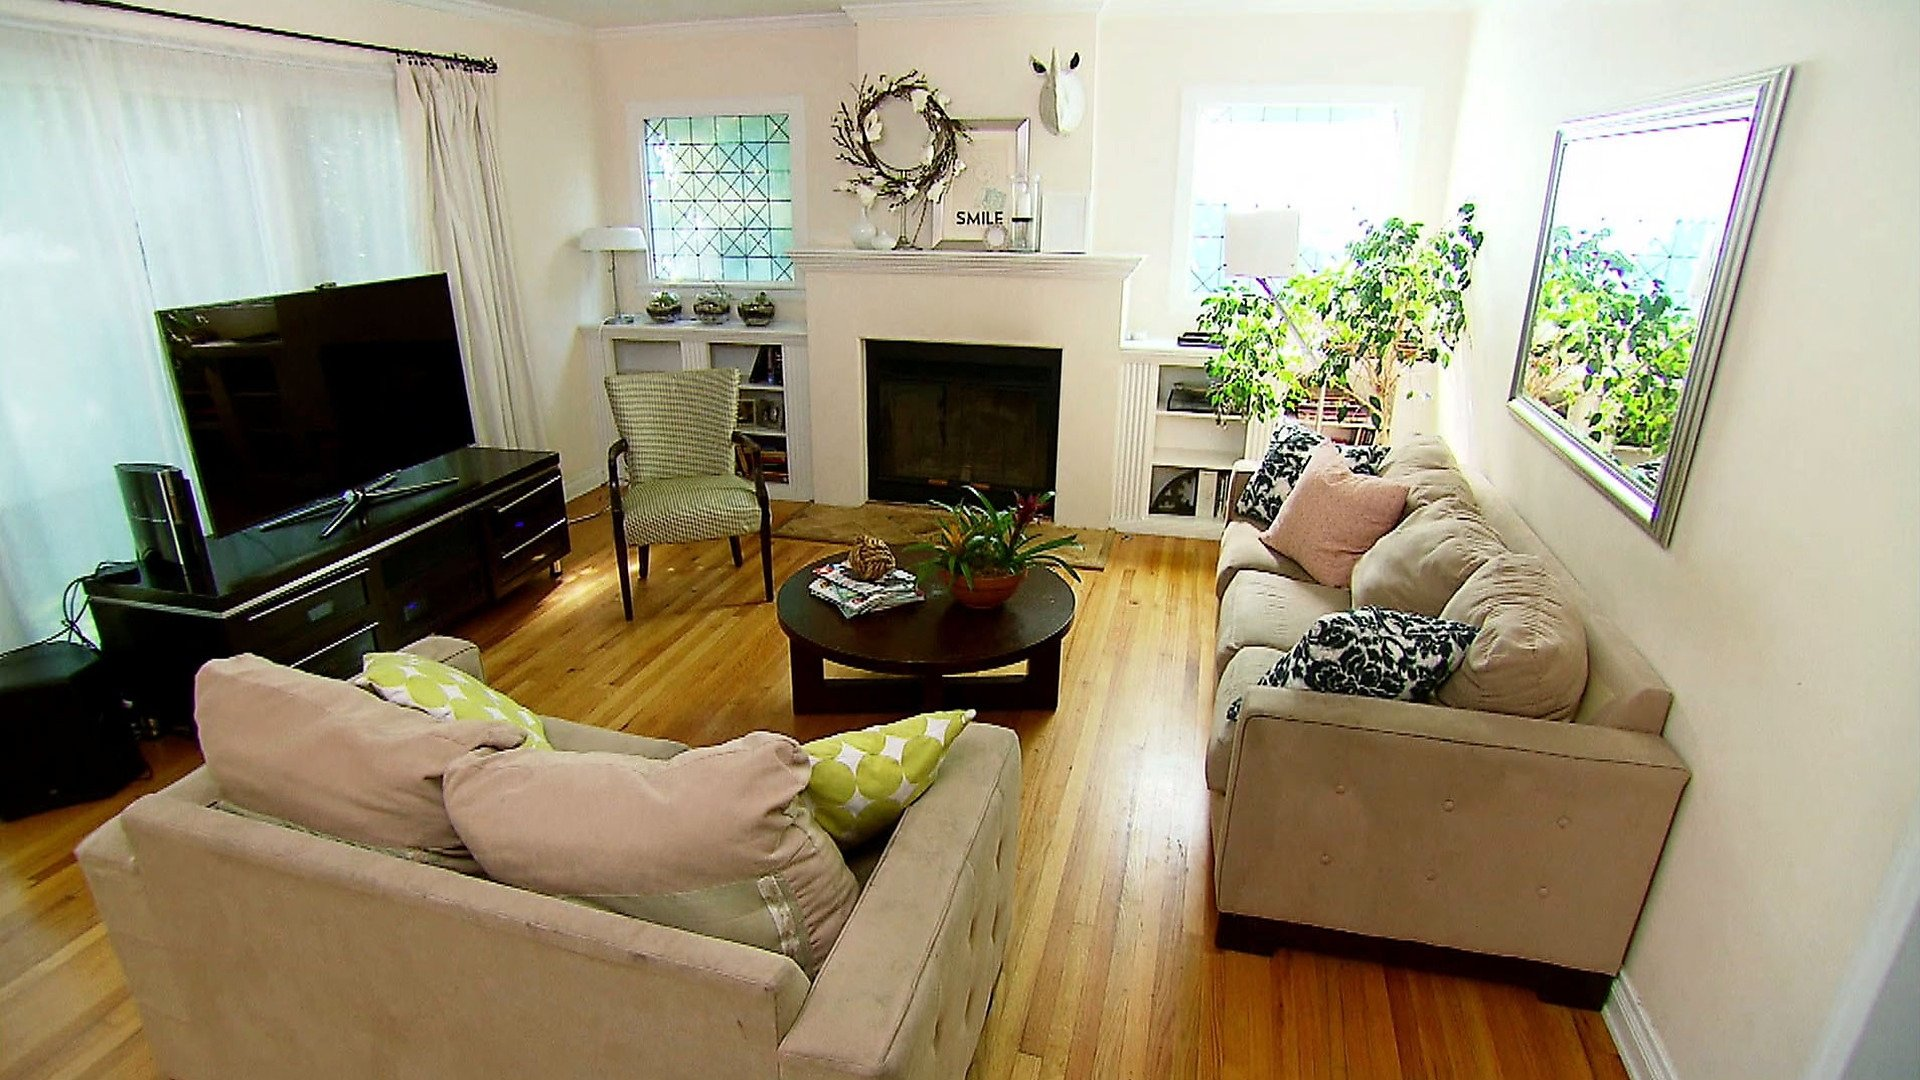 10 Awesome Living Room Ideas For Cheap living room style on a budget hgtv 2 2020